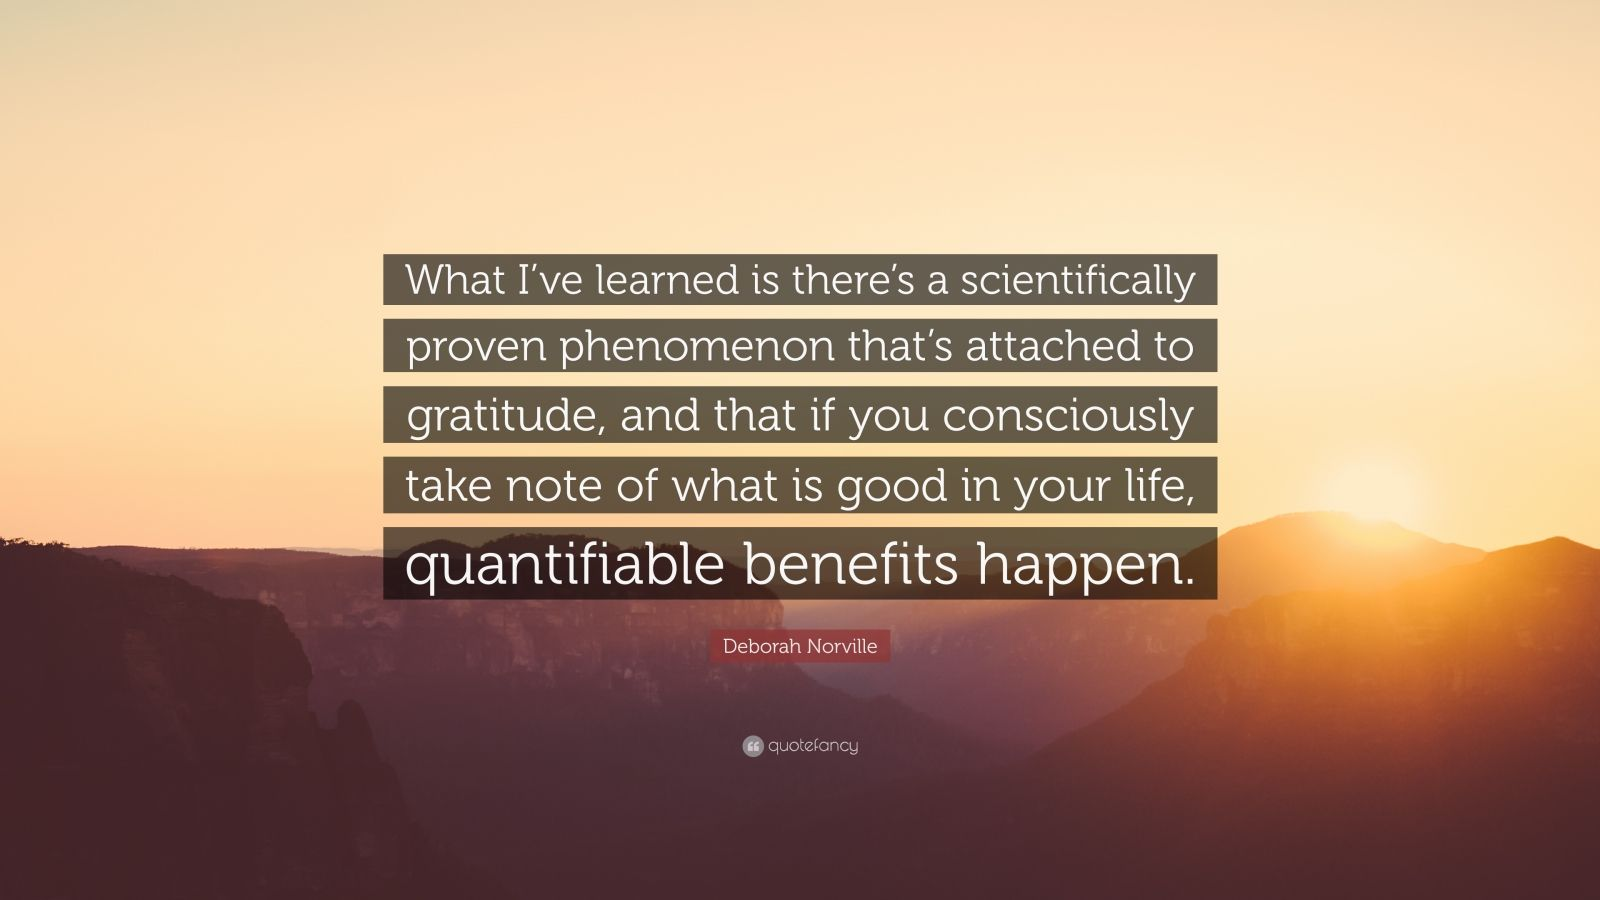 """Deborah Norville Quote: """"What I've learned is there's a scientifically proven phenomenon that's attached to gratitude, and that if you consciously take note of what is good in your life, quantifiable benefits happen."""""""